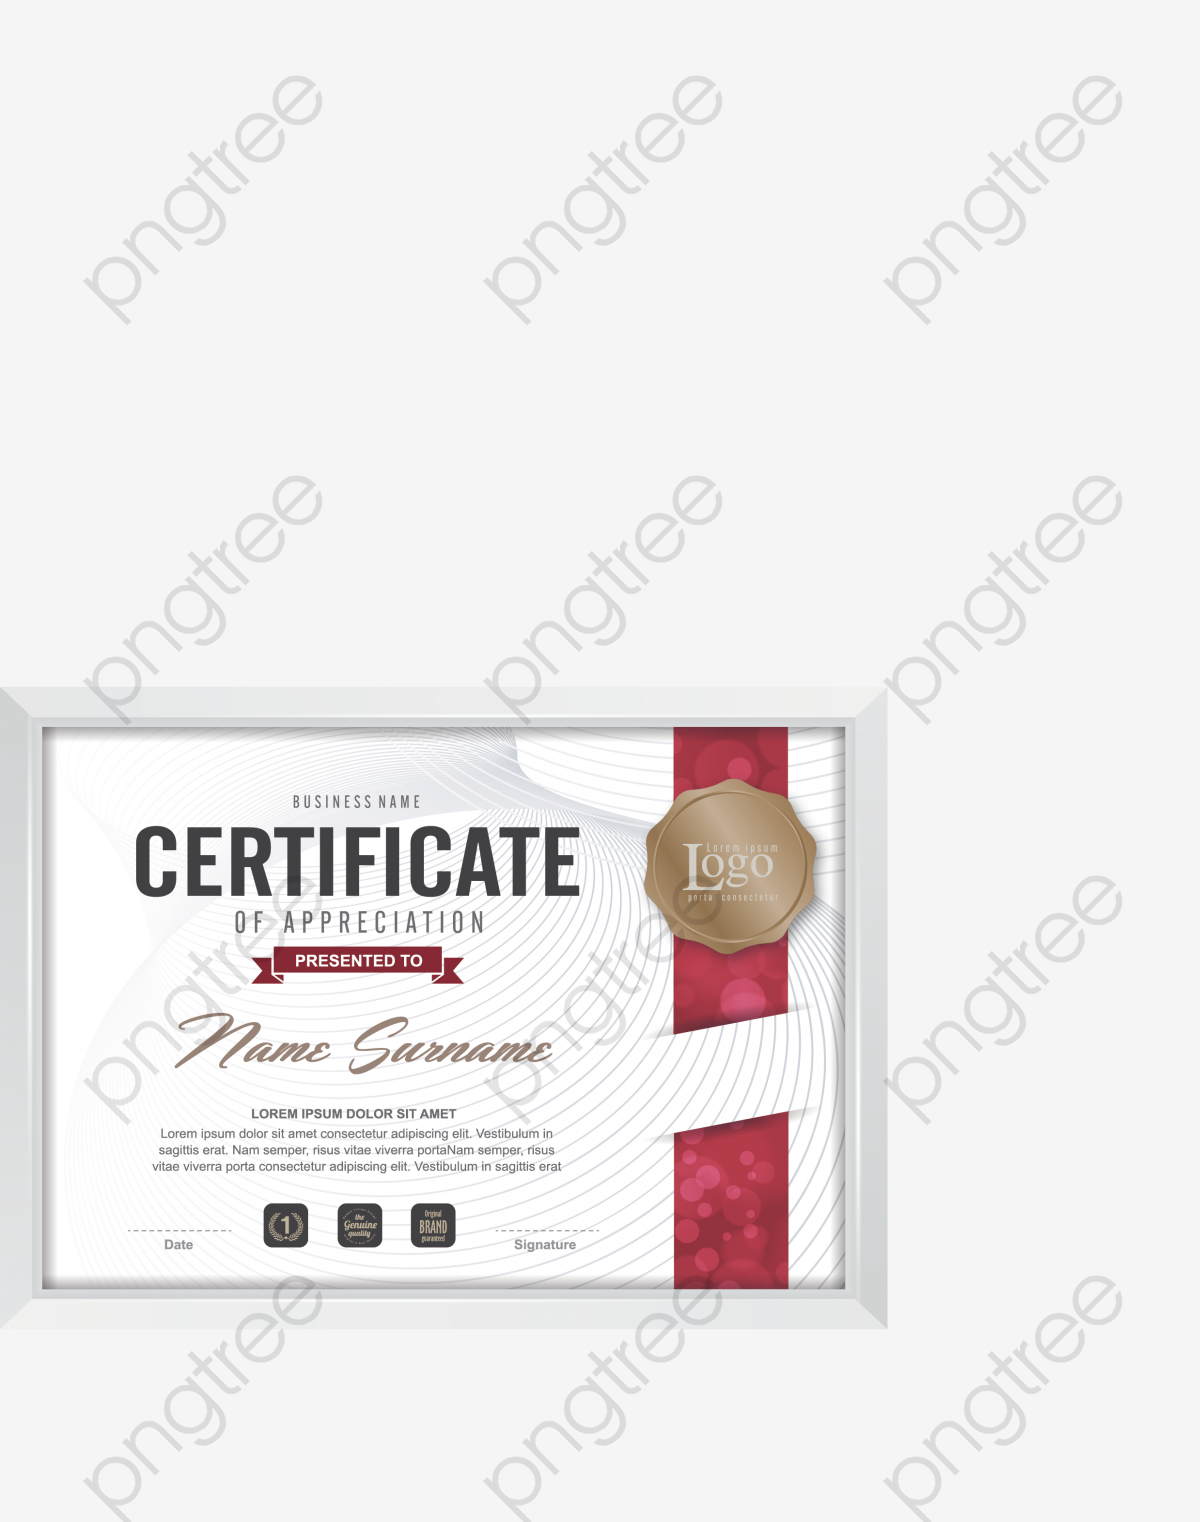 certificat de conception lace anglais attestation de